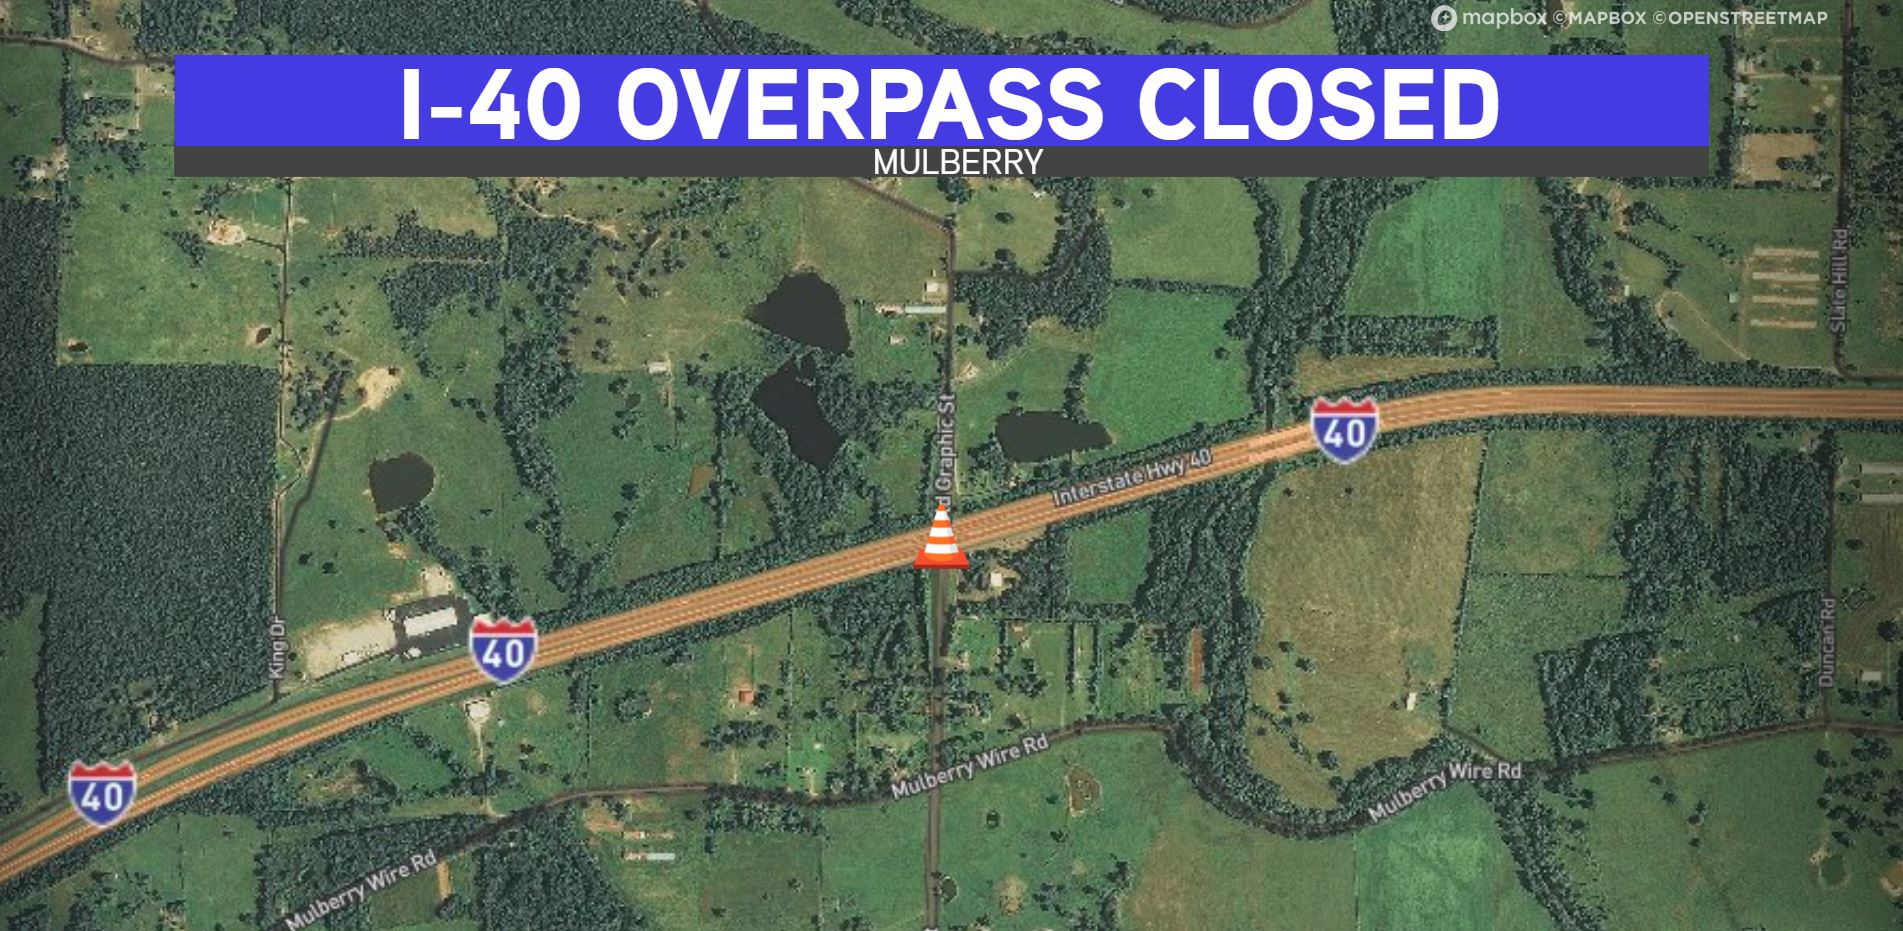 Interstate 40 Overpass Closing For 3 Weeks For Deck Rehabilitation